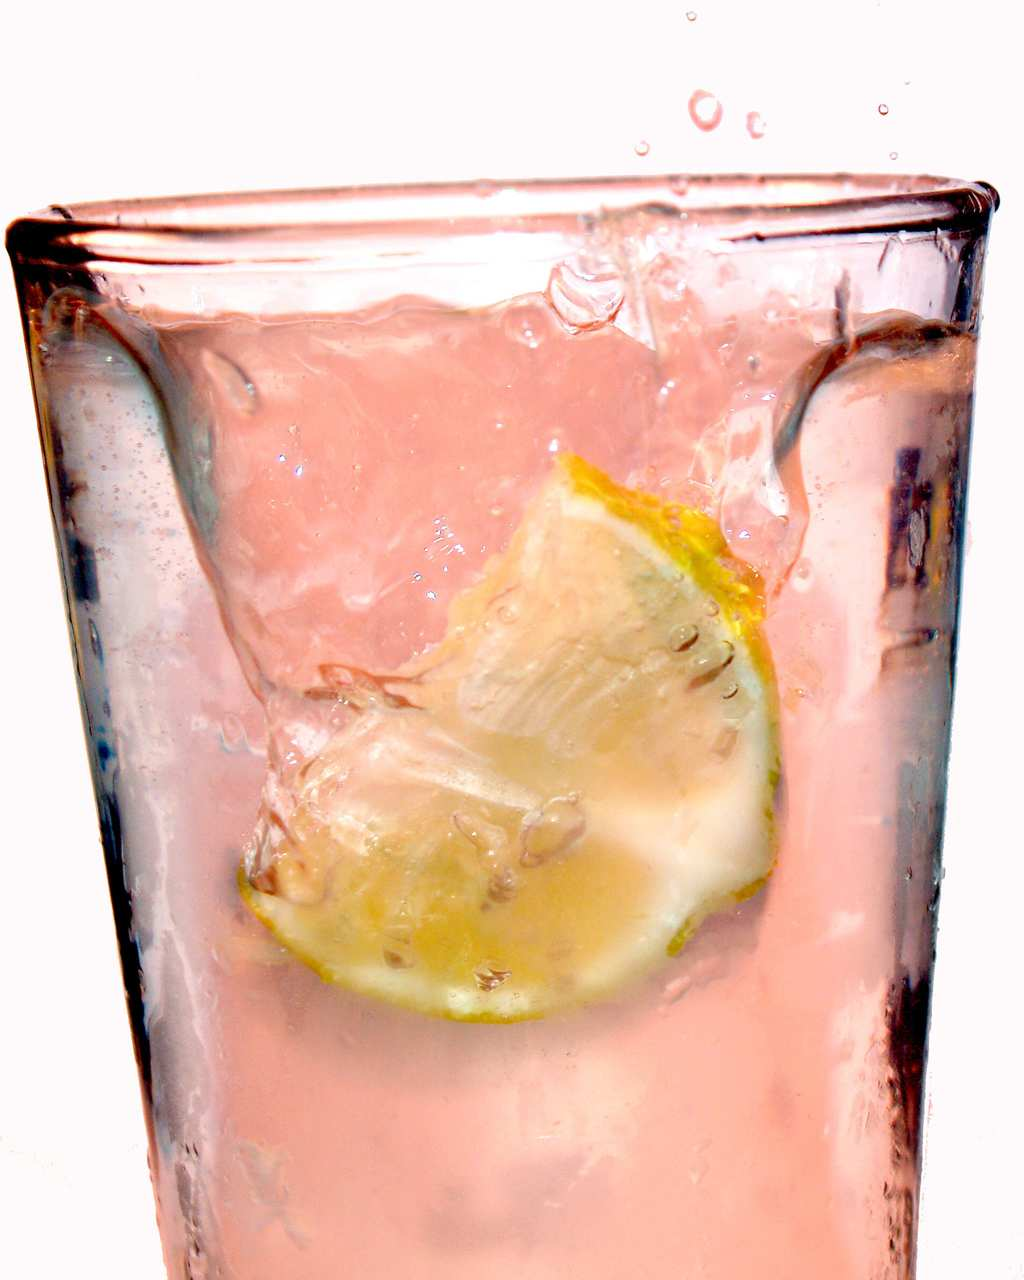 Pink summer lemonade with lemon in glass